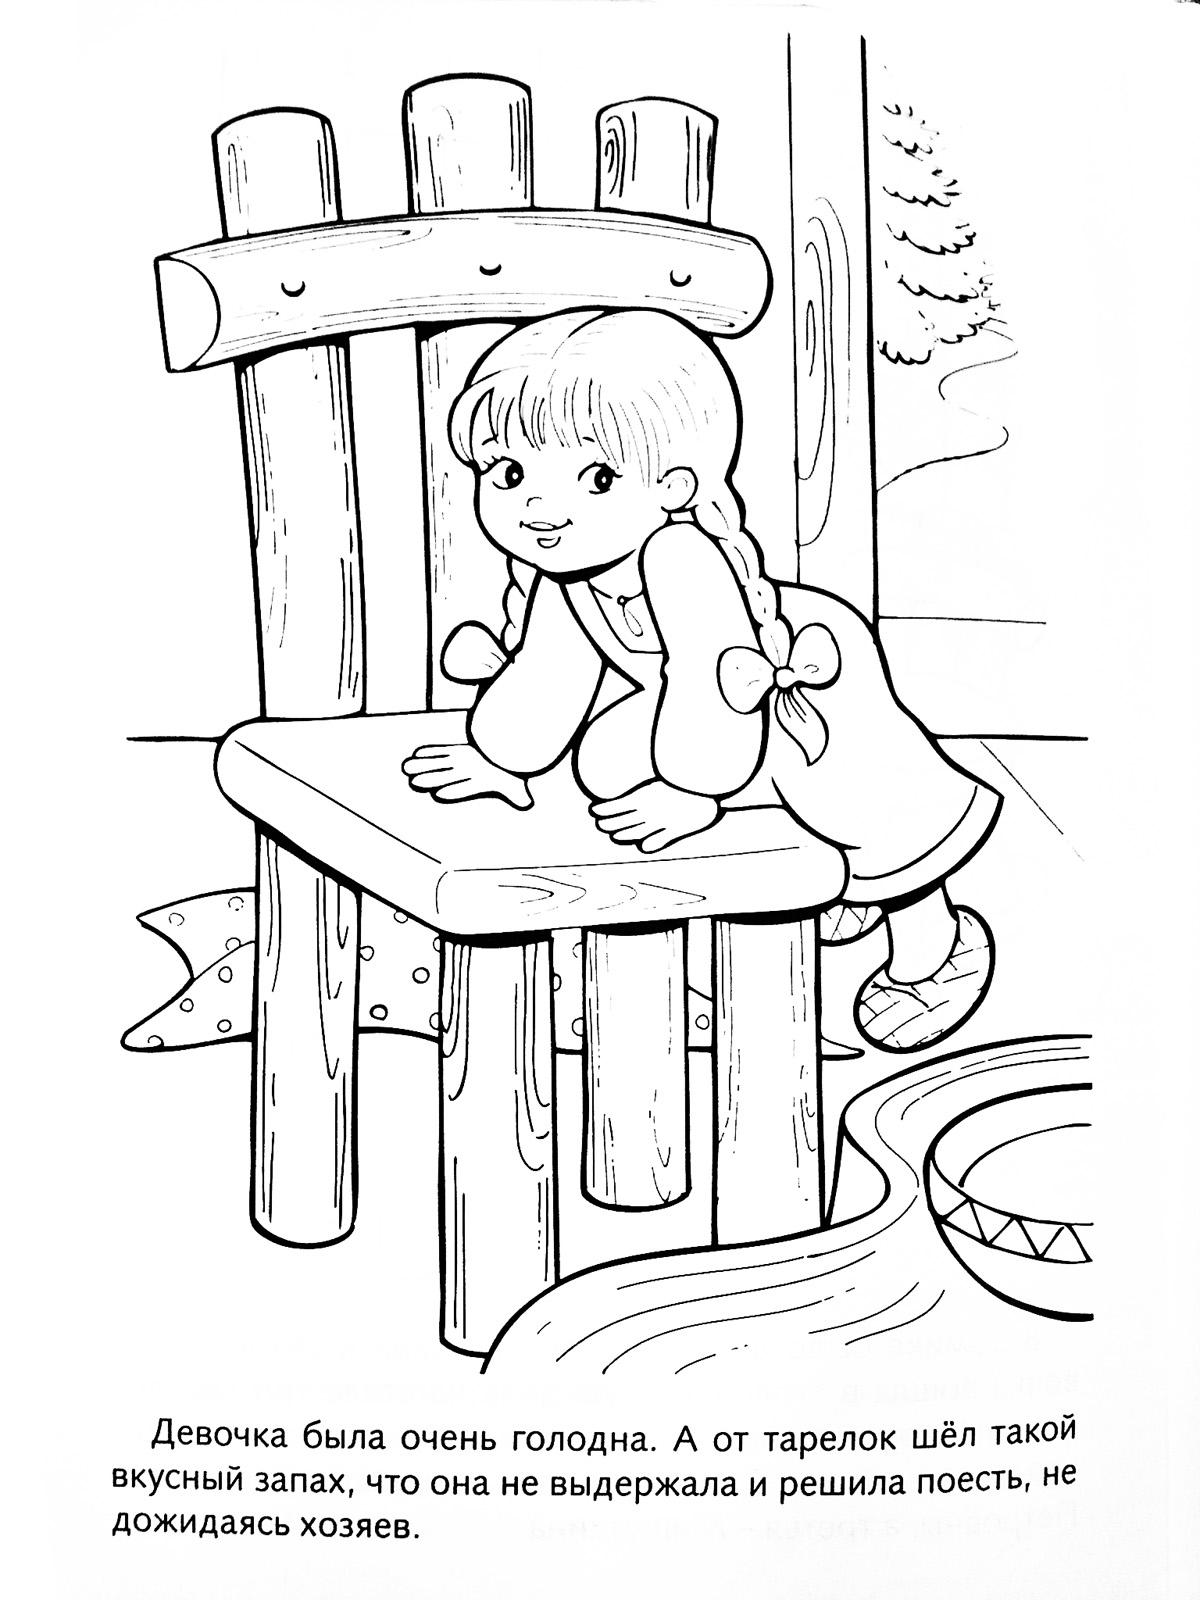 Coloring coloring pages to the tale of three bears girl climbs on a chair, coloring pages Three Bears fairy tale